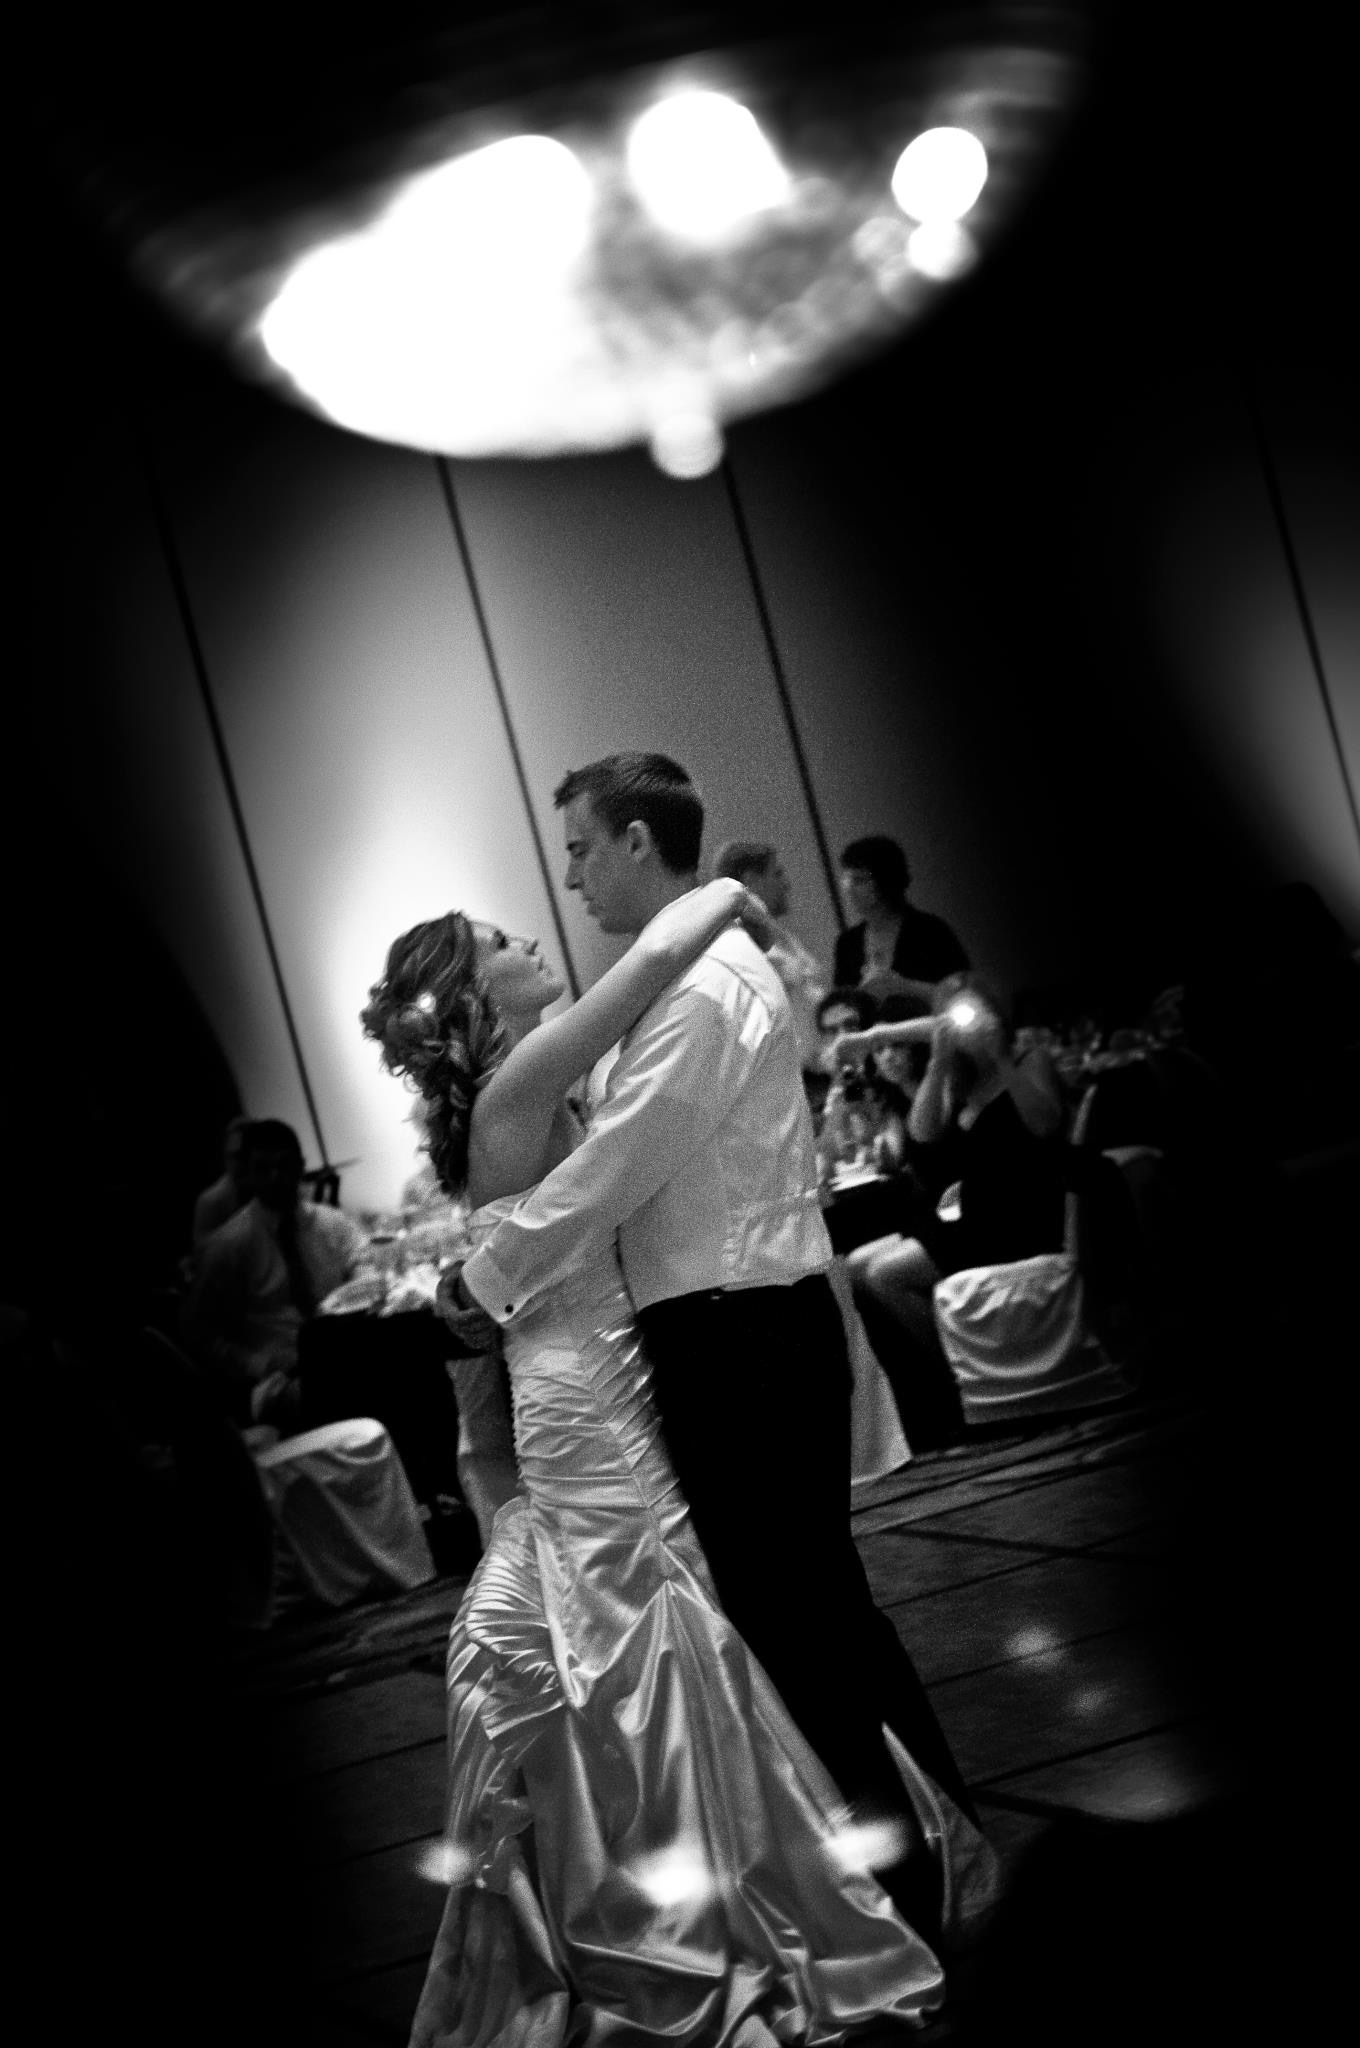 husband and wife dancing www.herviewfromhome.com